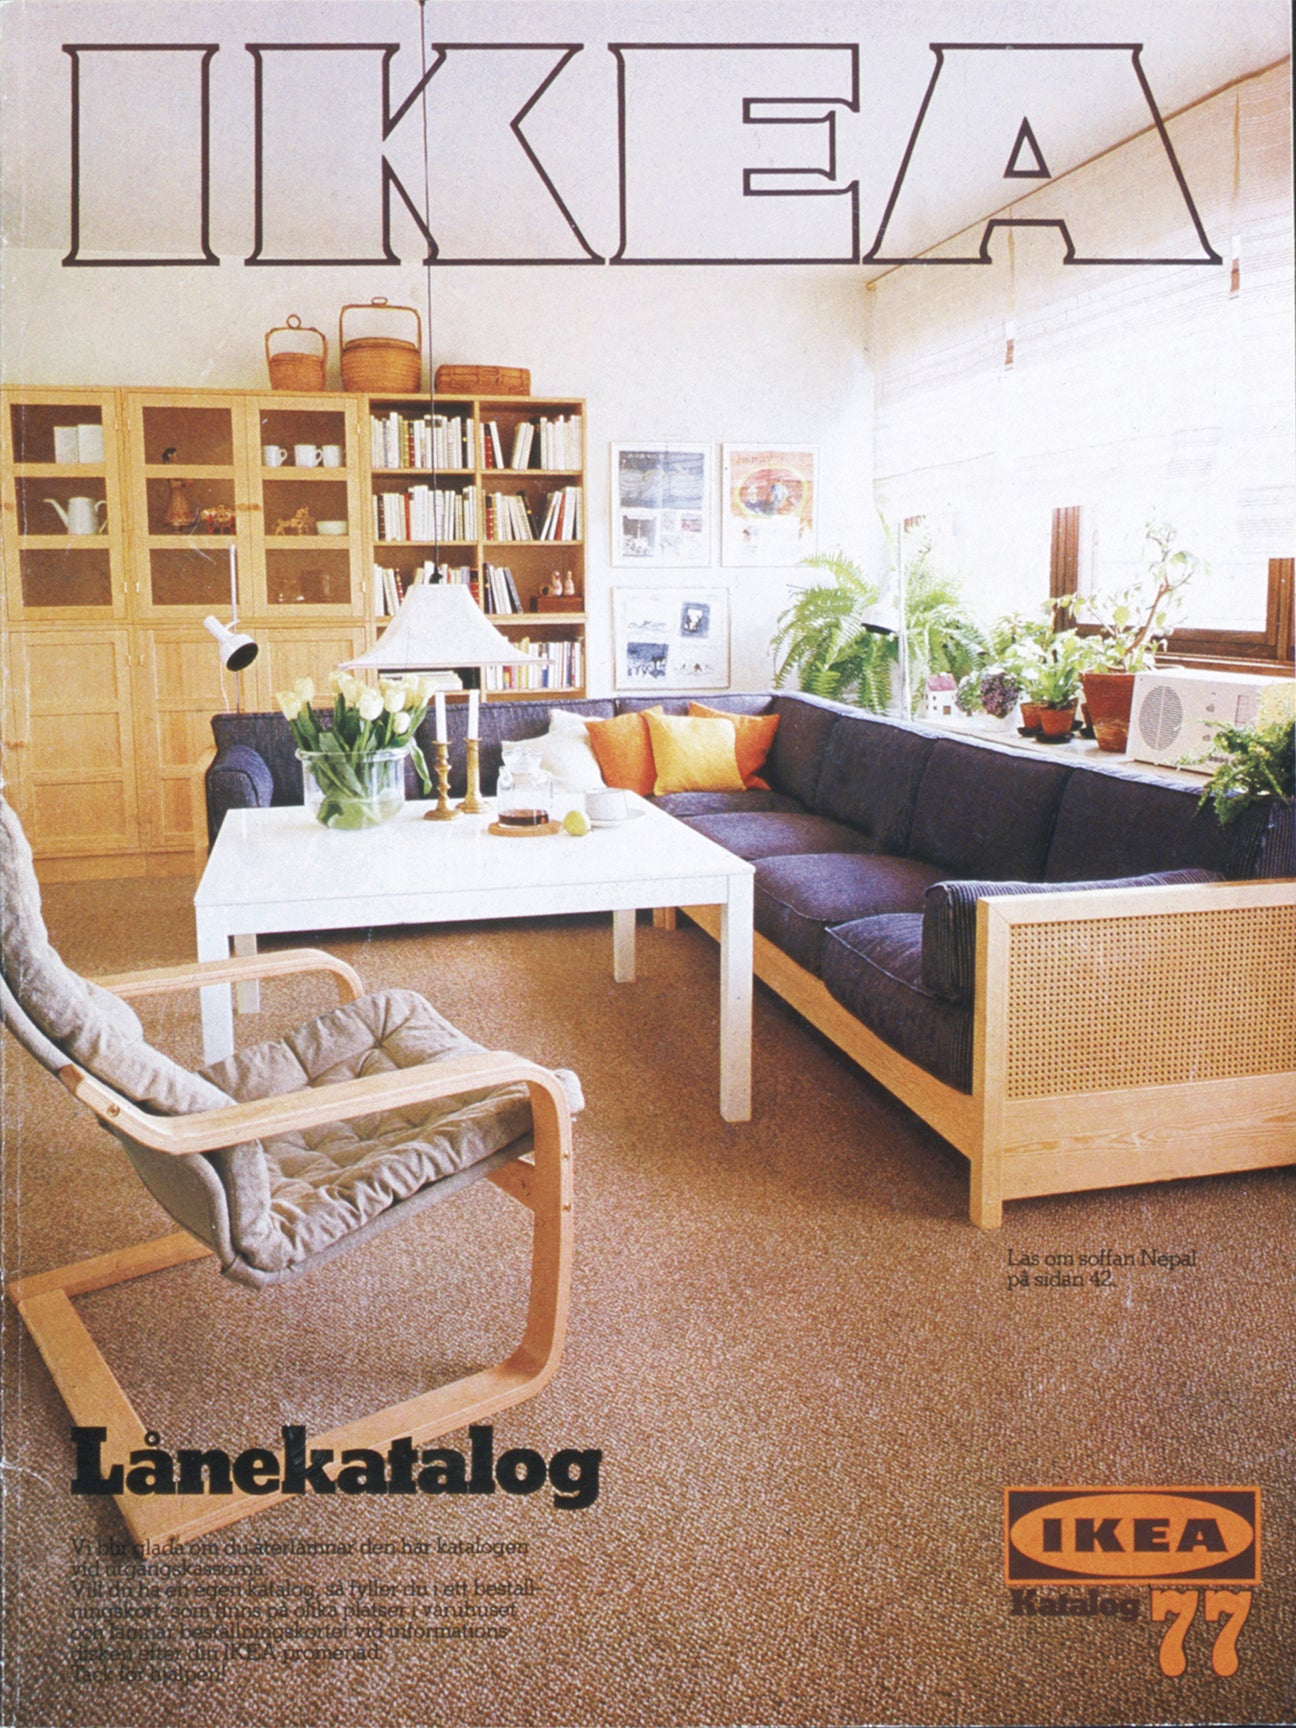 old ikea catalogue with cane furniture living room